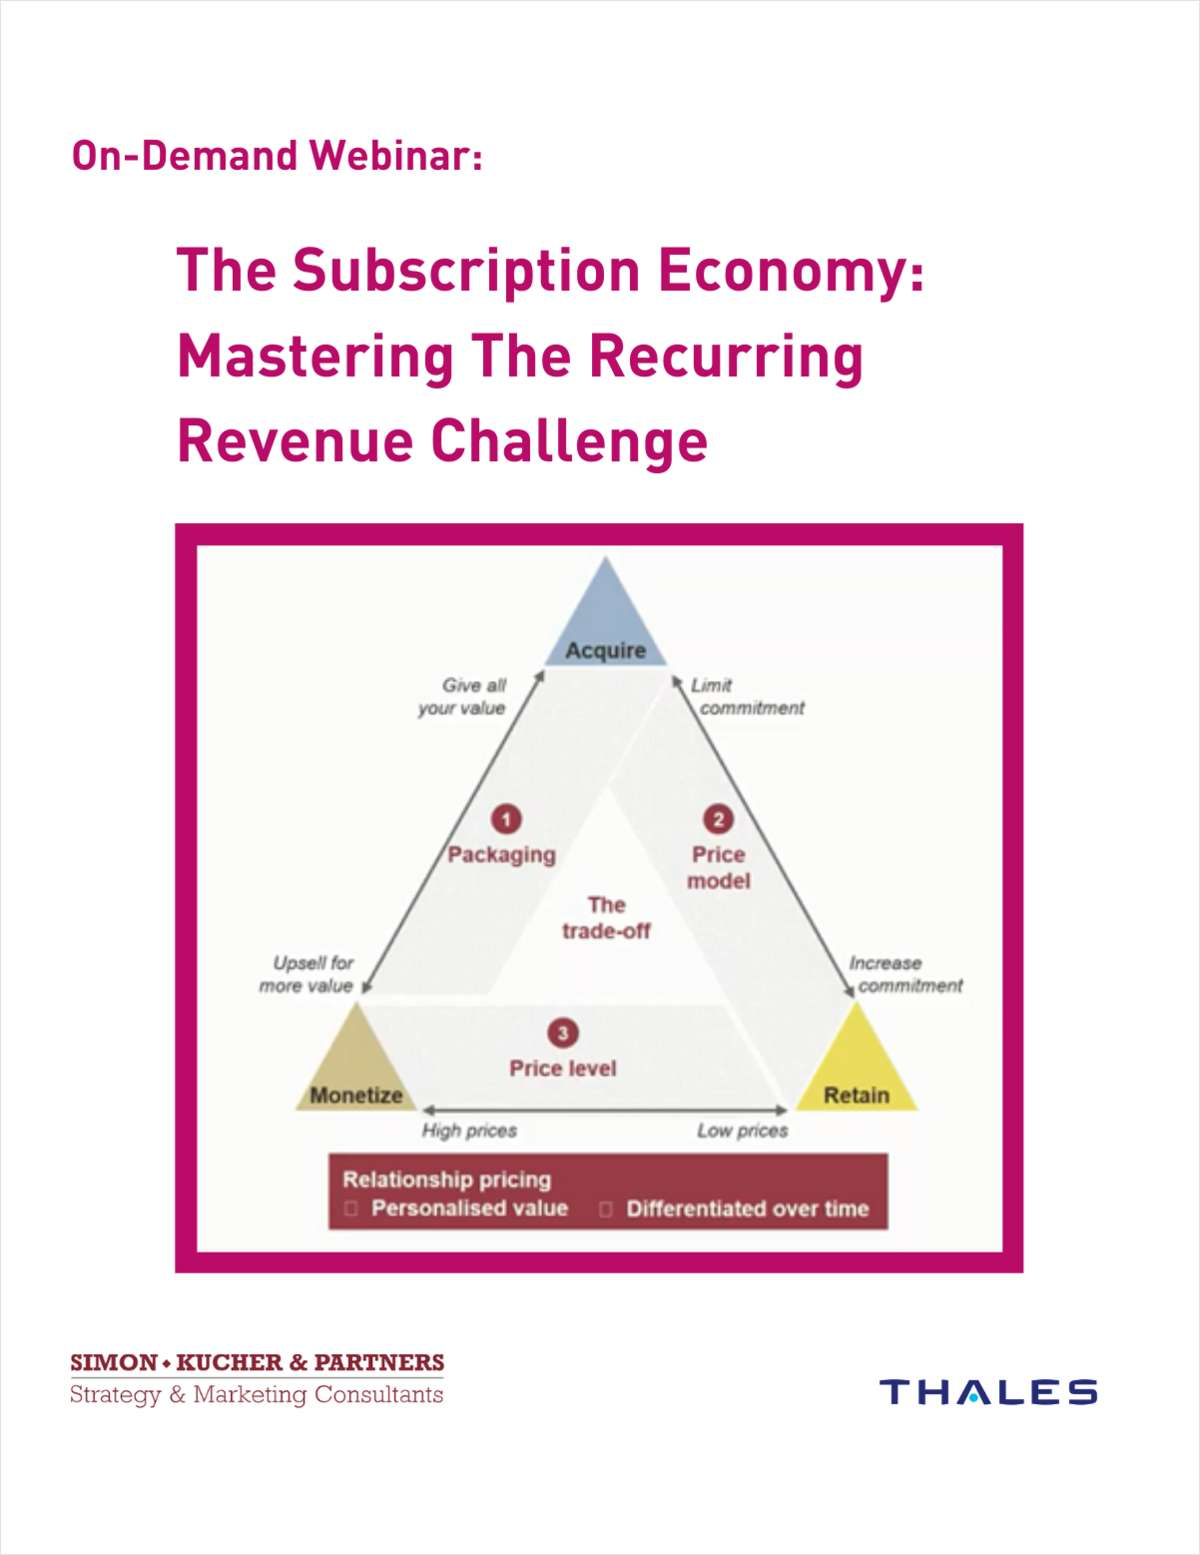 The Subscription Economy: Mastering The Recurring Revenue Challenge